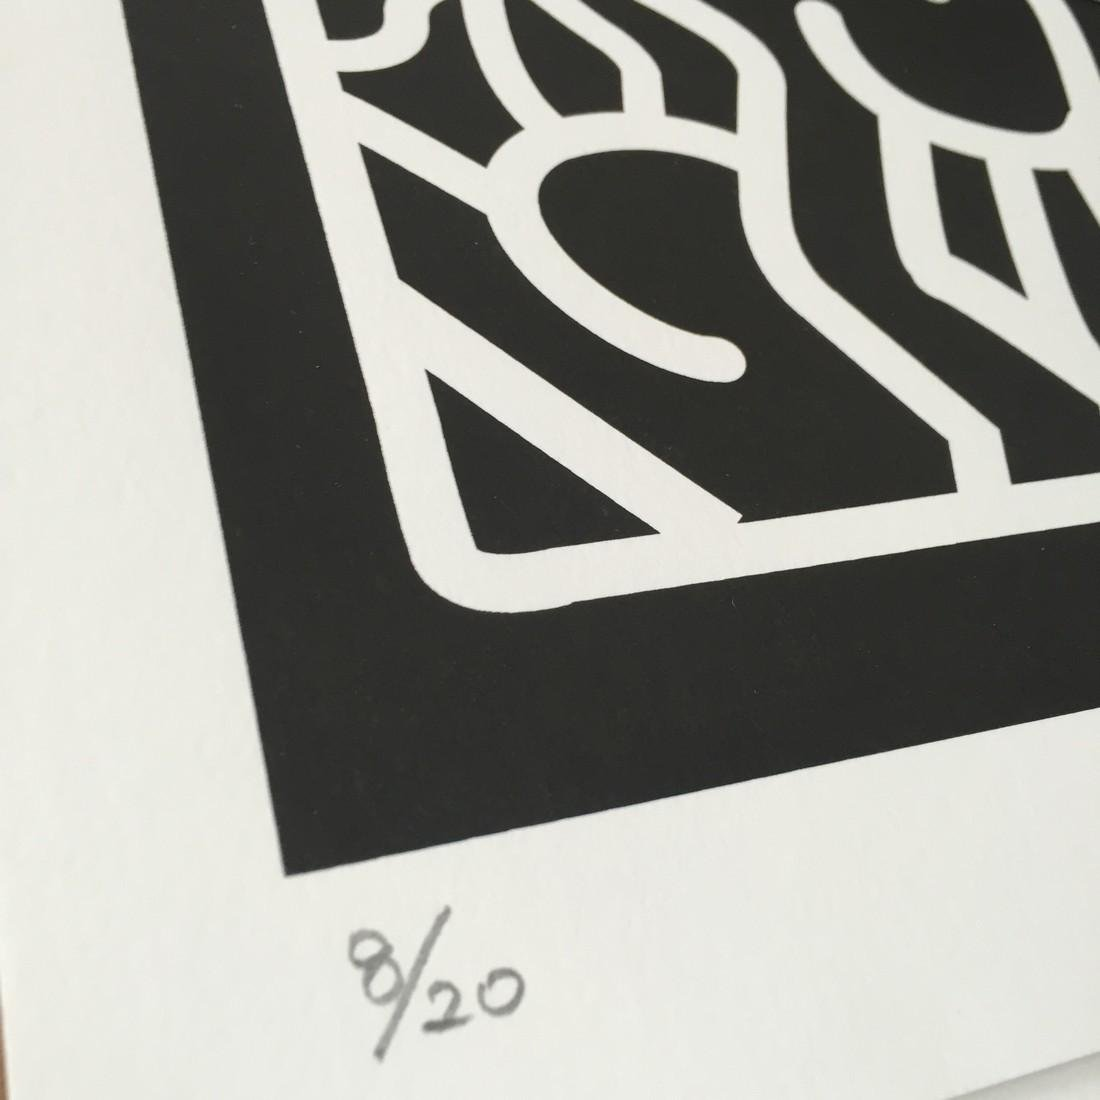 Untitled 19/20 - Keith Haring - 3